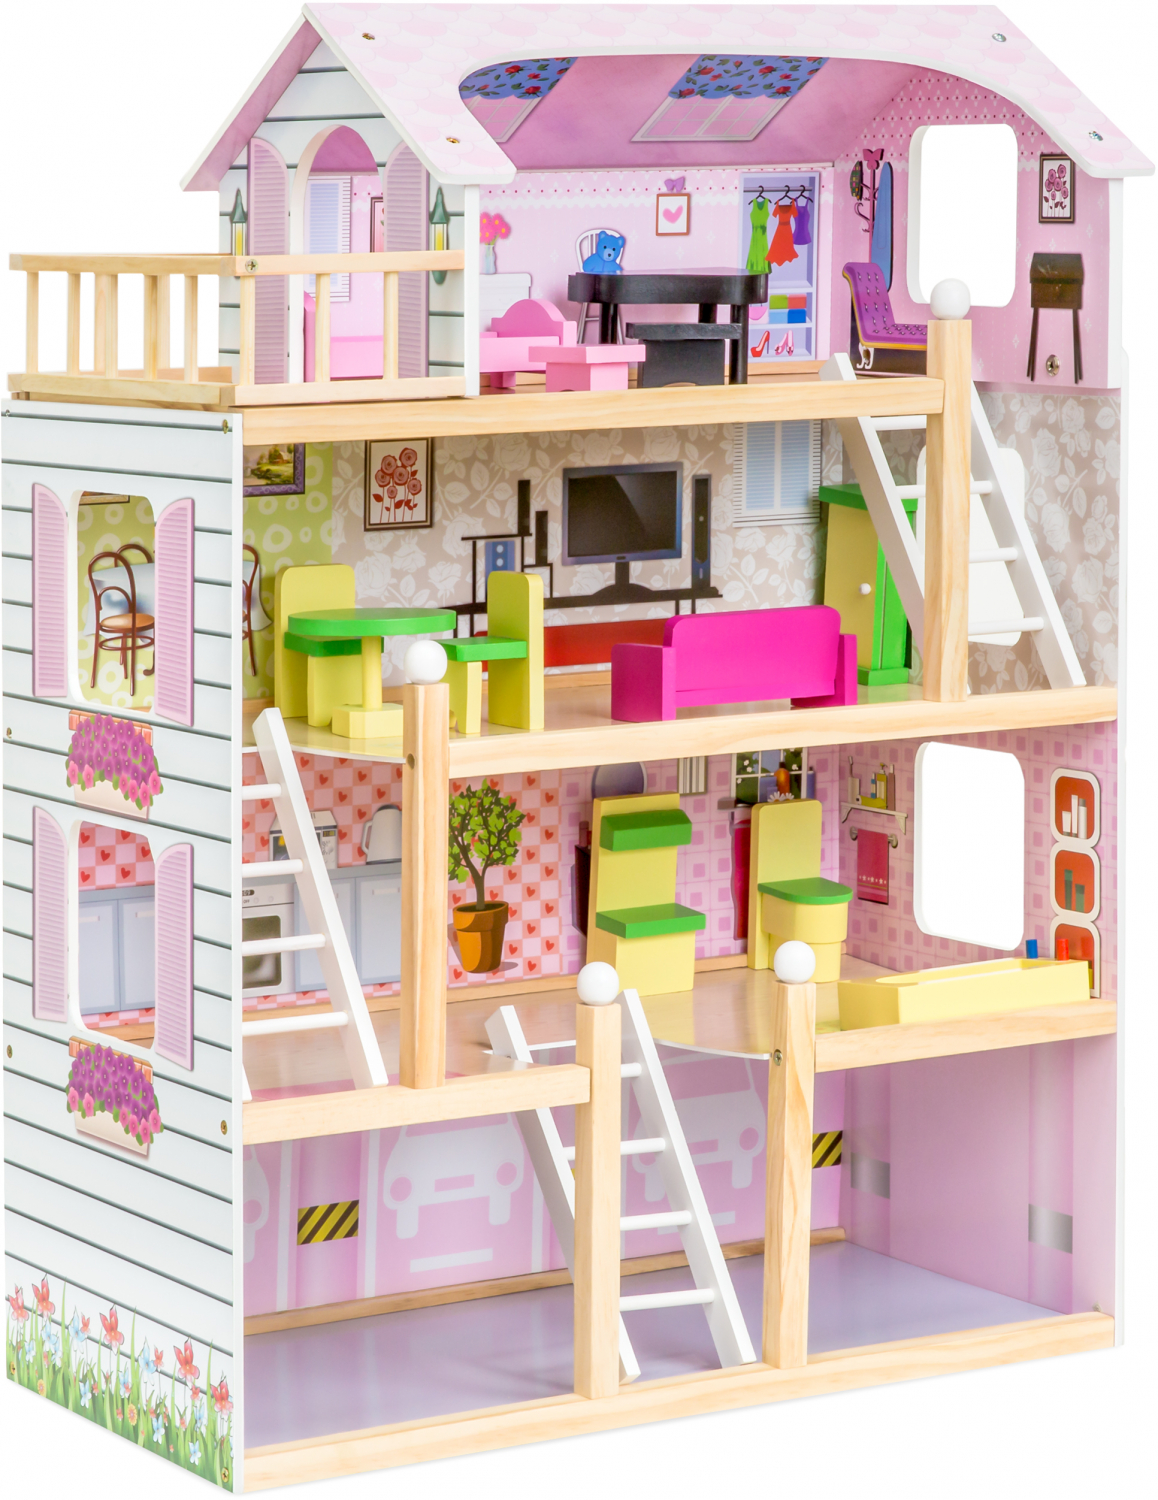 Barbie Dream House Size Dollhouse Furniture Girls Playhouse Townhouse Fun Play